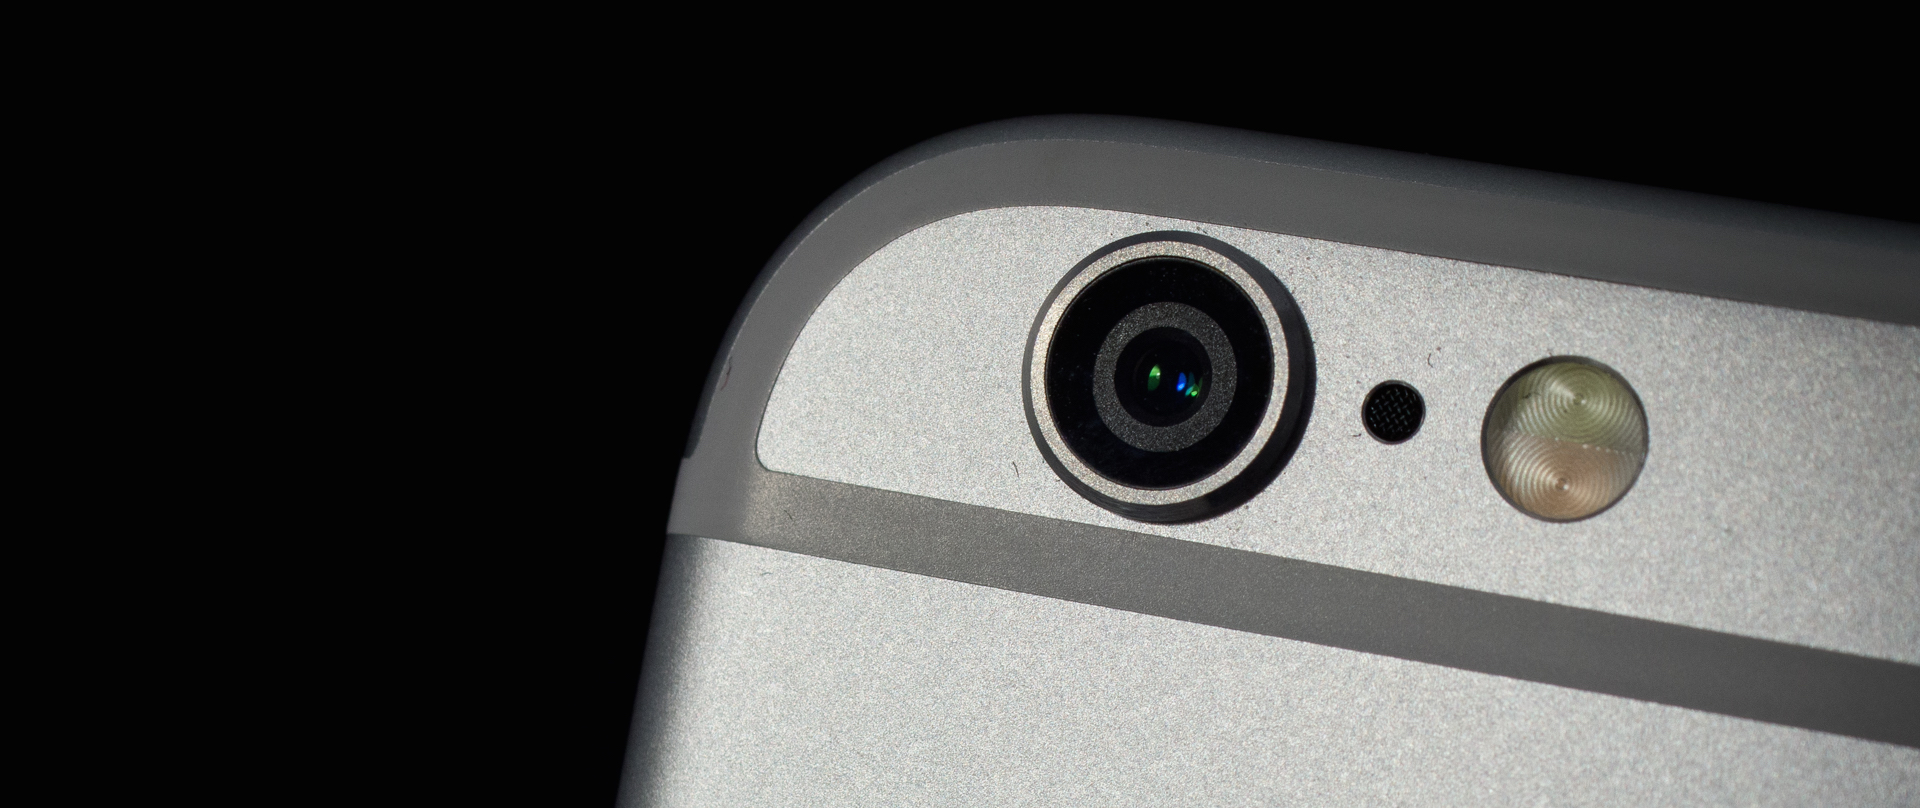 motherboard.vice.com - Written by Lorenzo Franceschi-Bicchierai - Government Hackers Caught Using Unprecedented iPhone Spy Tool